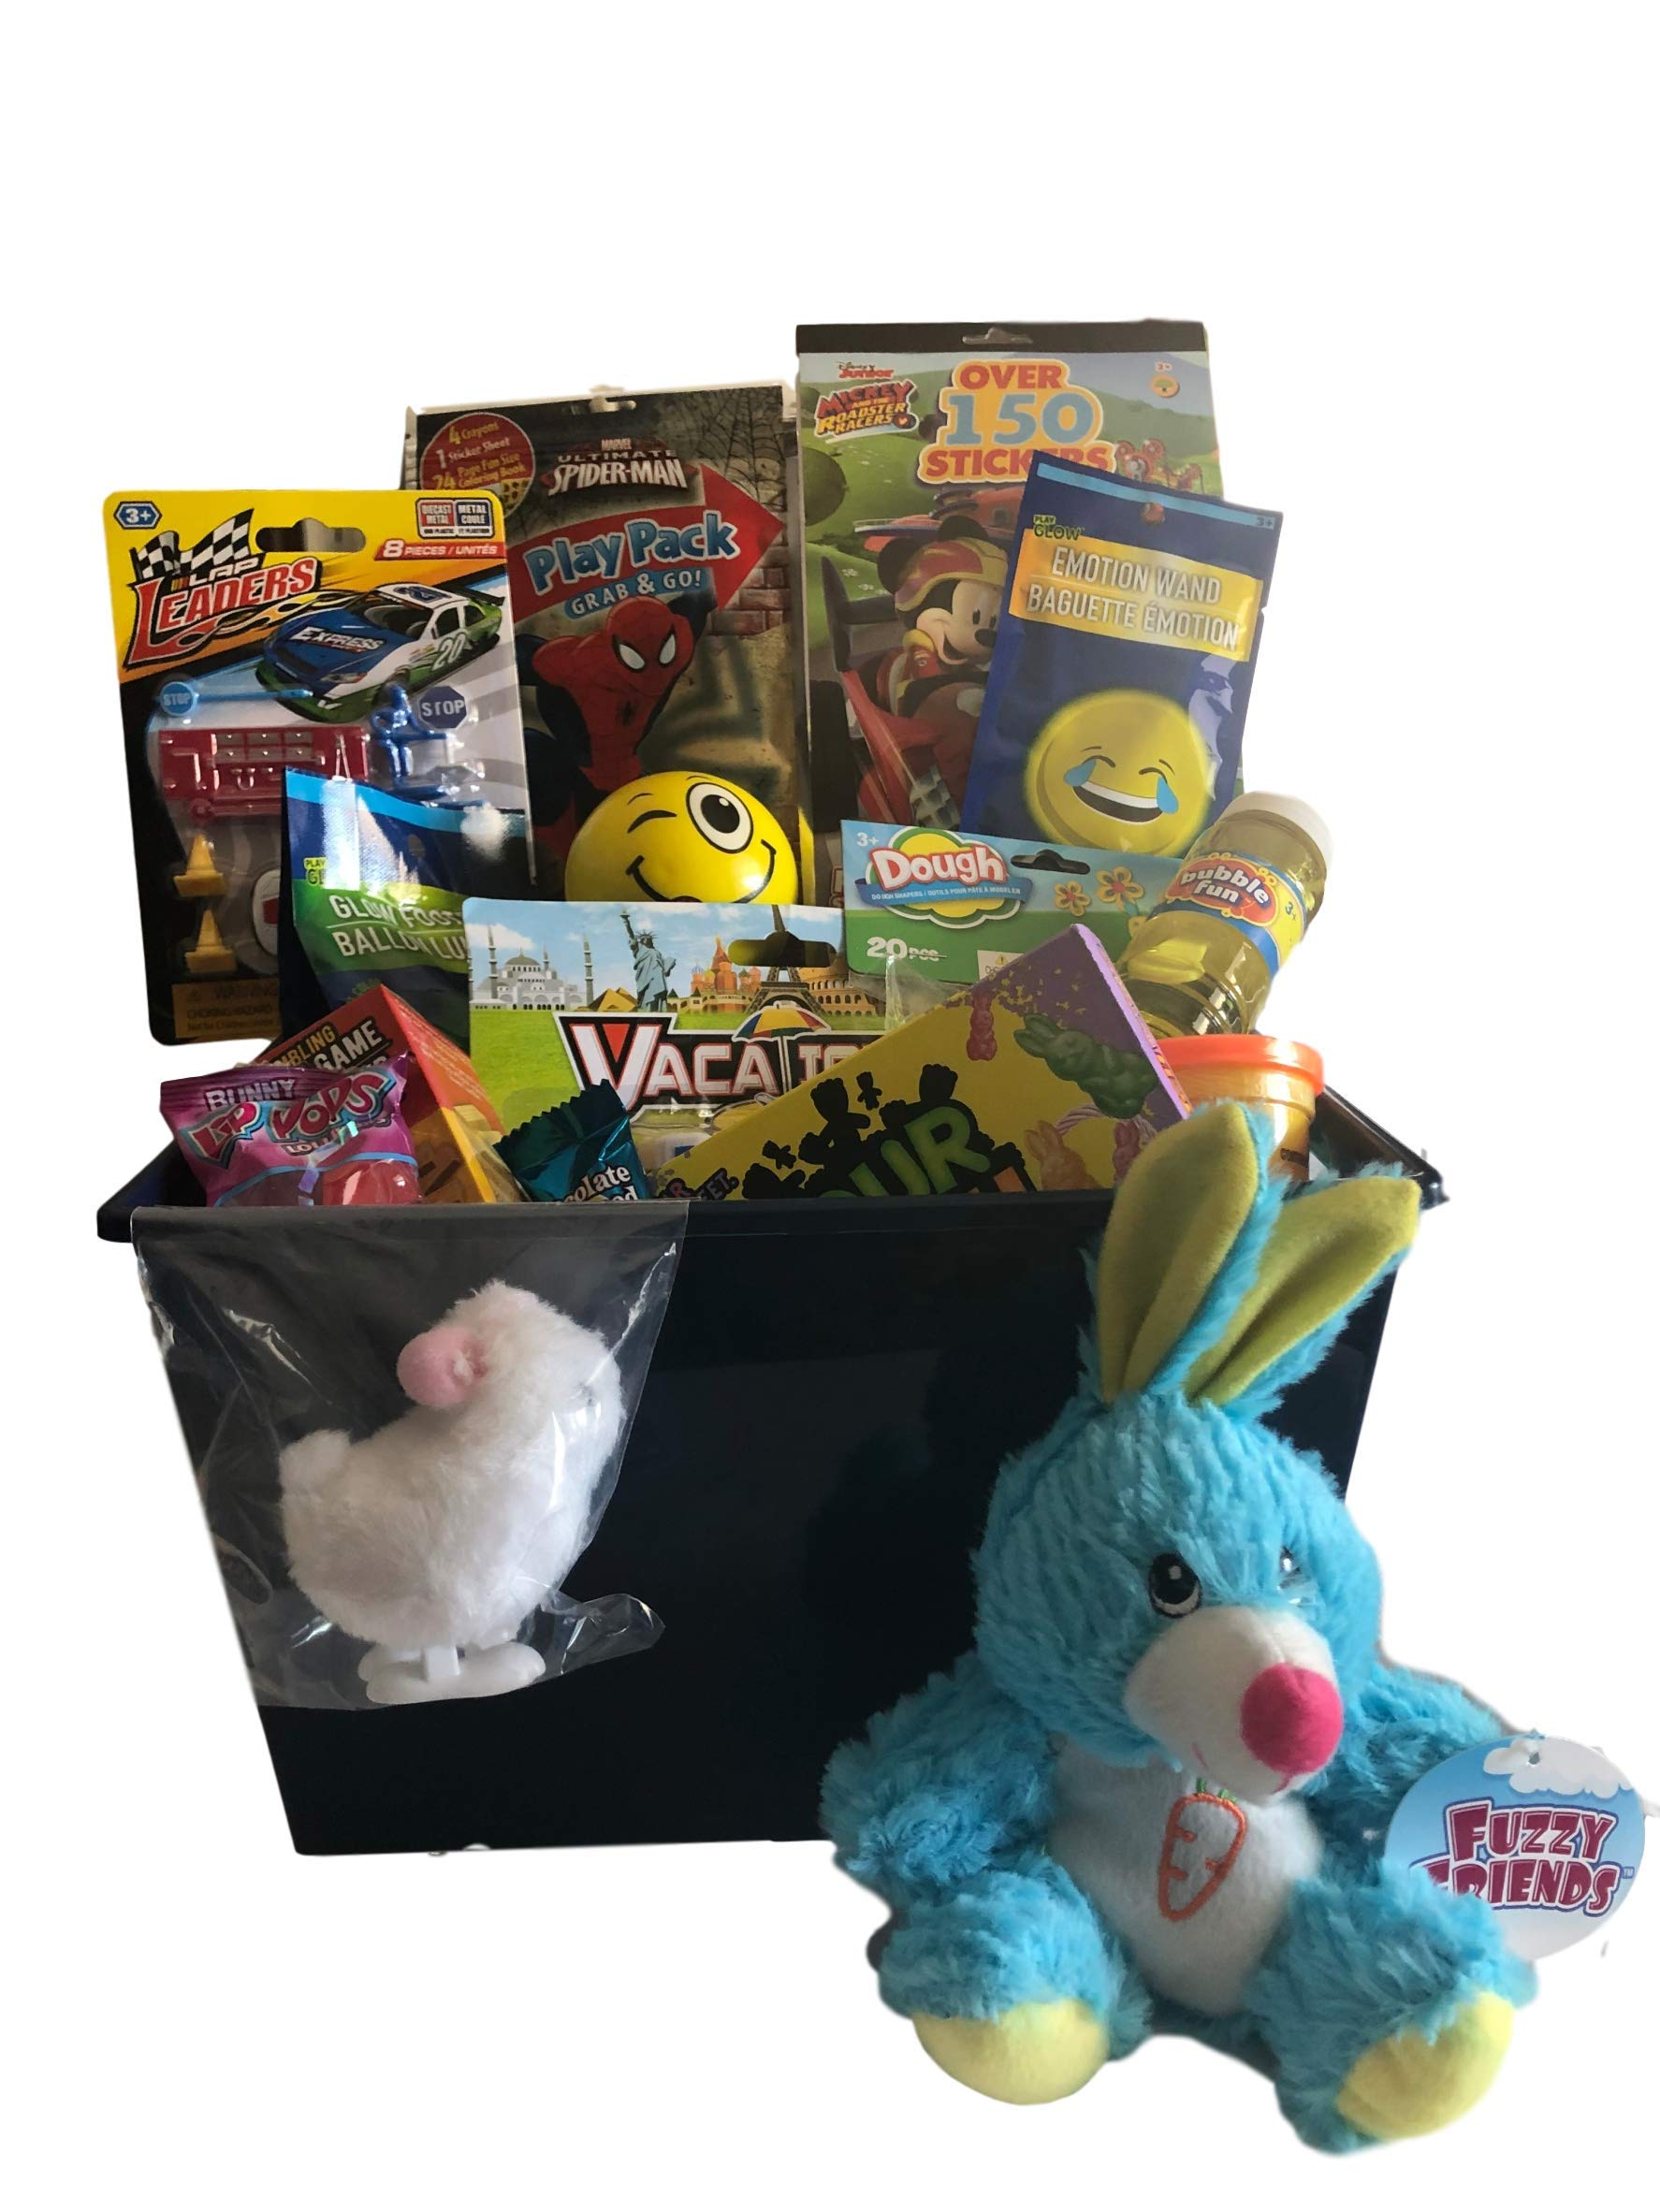 Easter Basket for Boy Vacation Camper Lap Leader Cars Glow Footbal Race Car Stickers and Much More